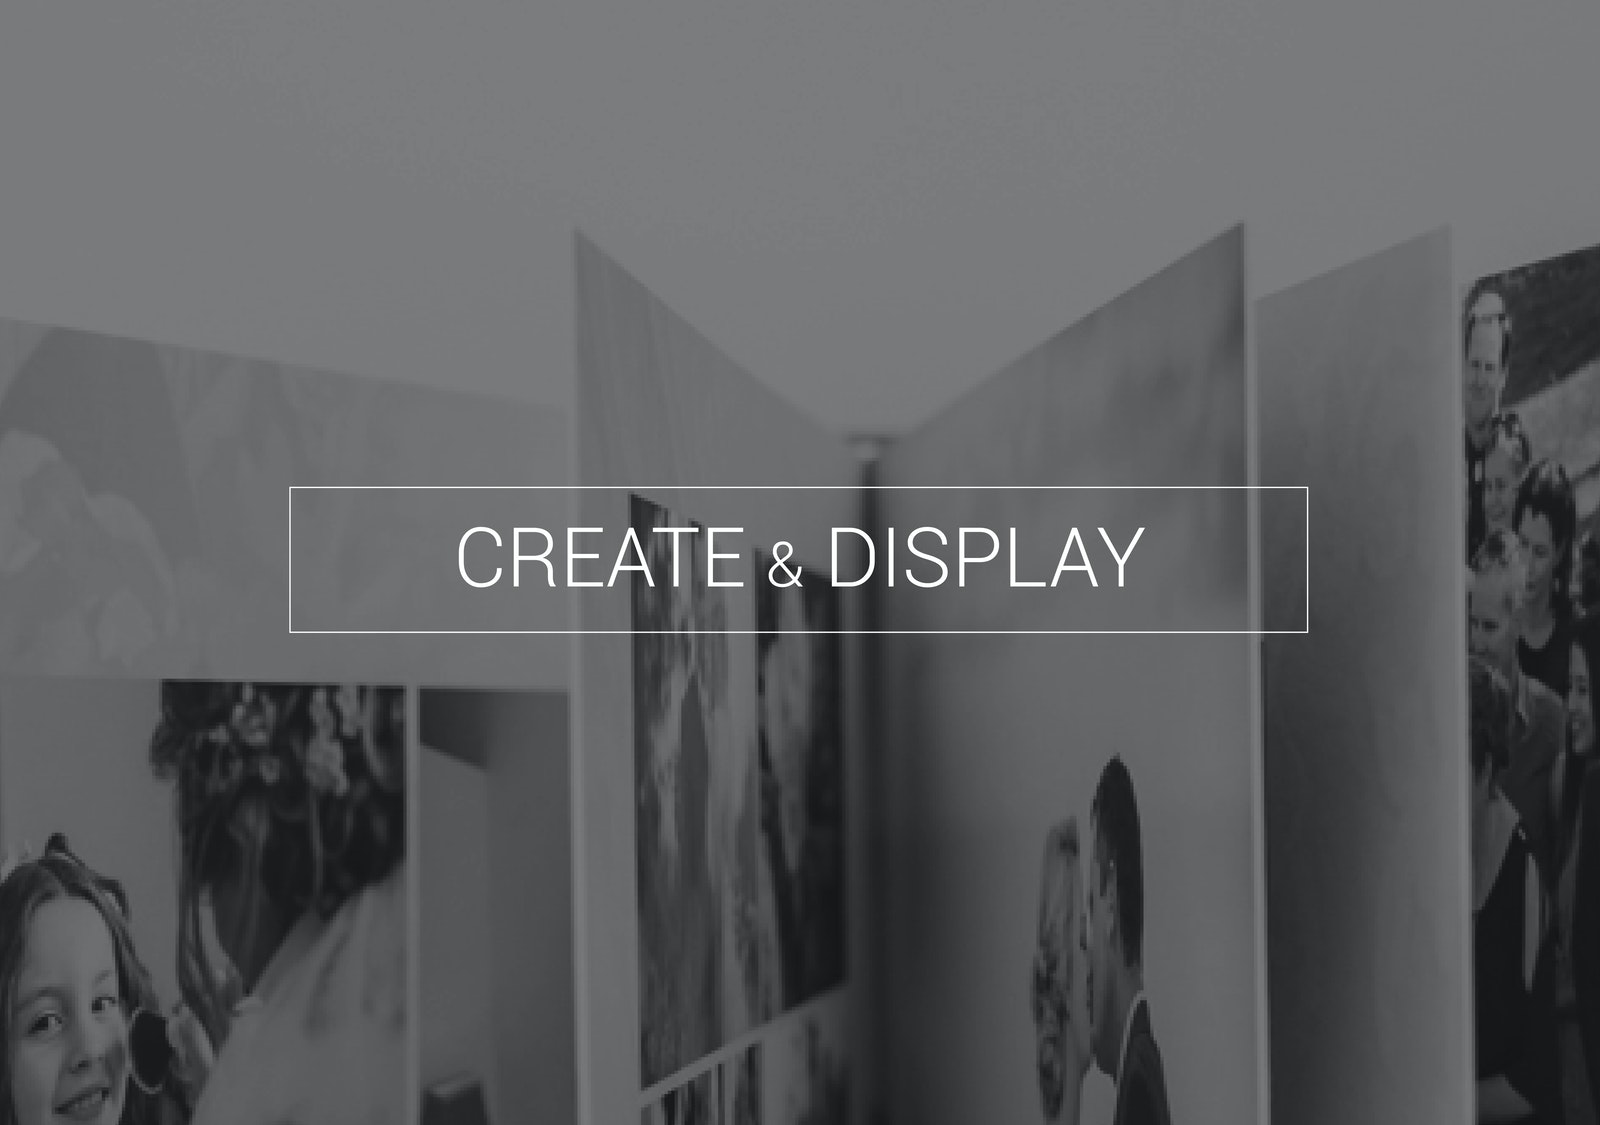 Create & Display